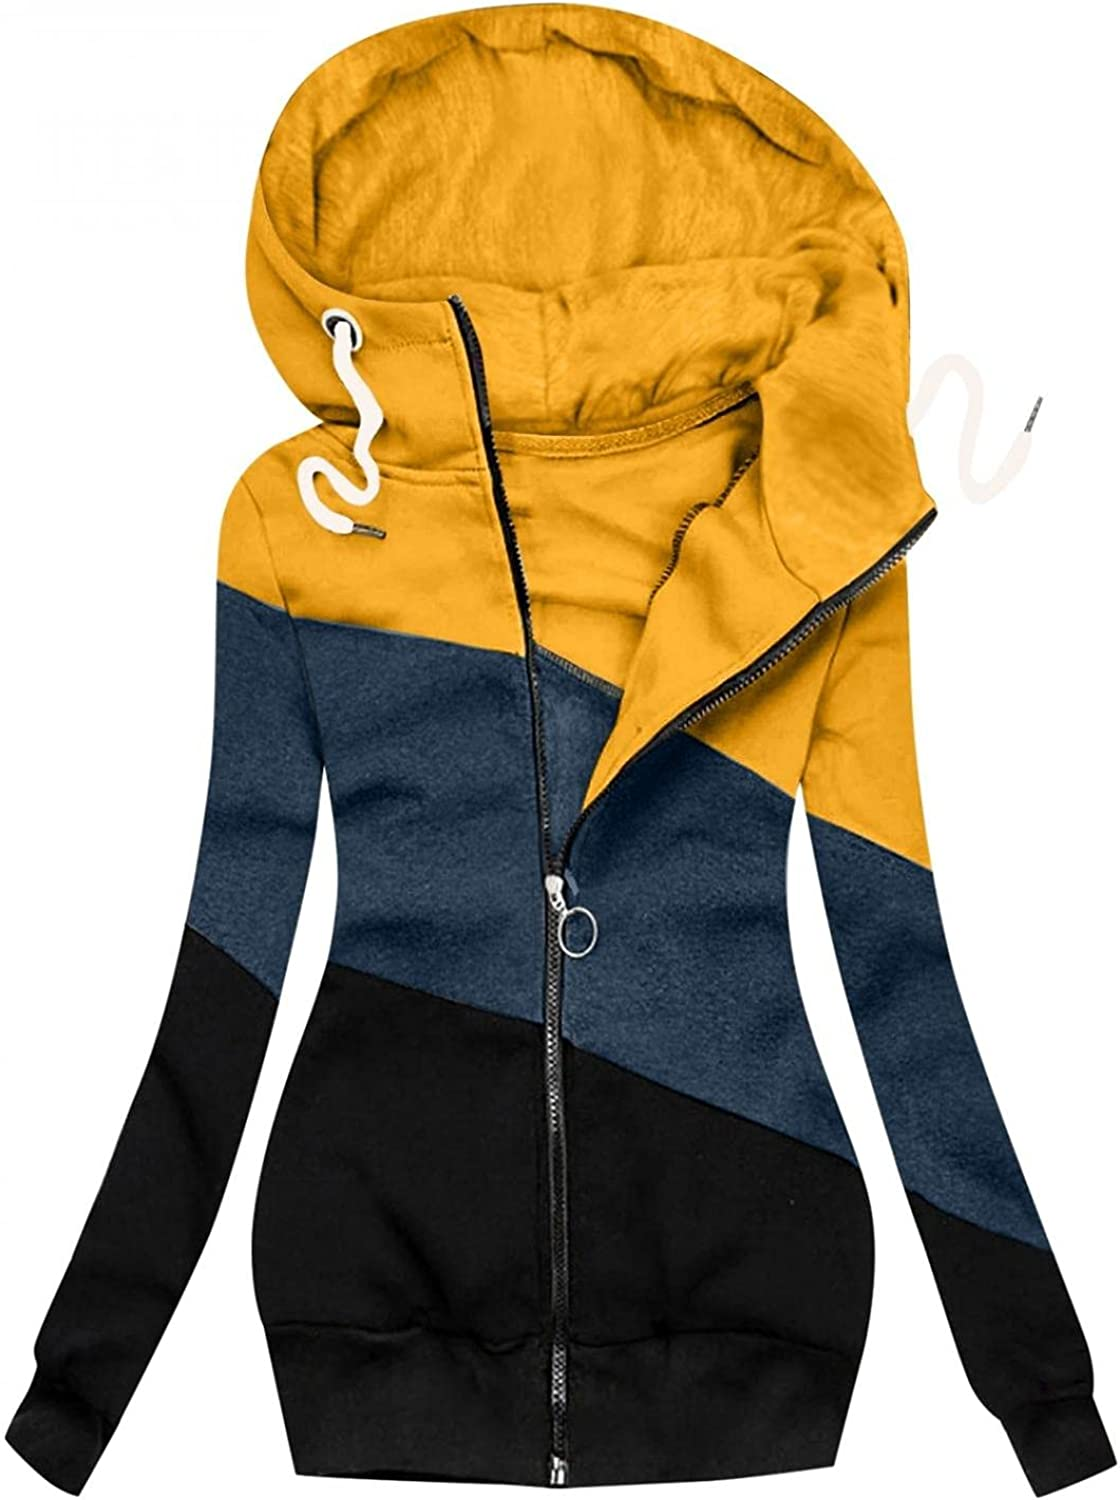 Women's Special price Hooded Jacket Coat Cotton Zipper Pocke famous Patchwork Jackets